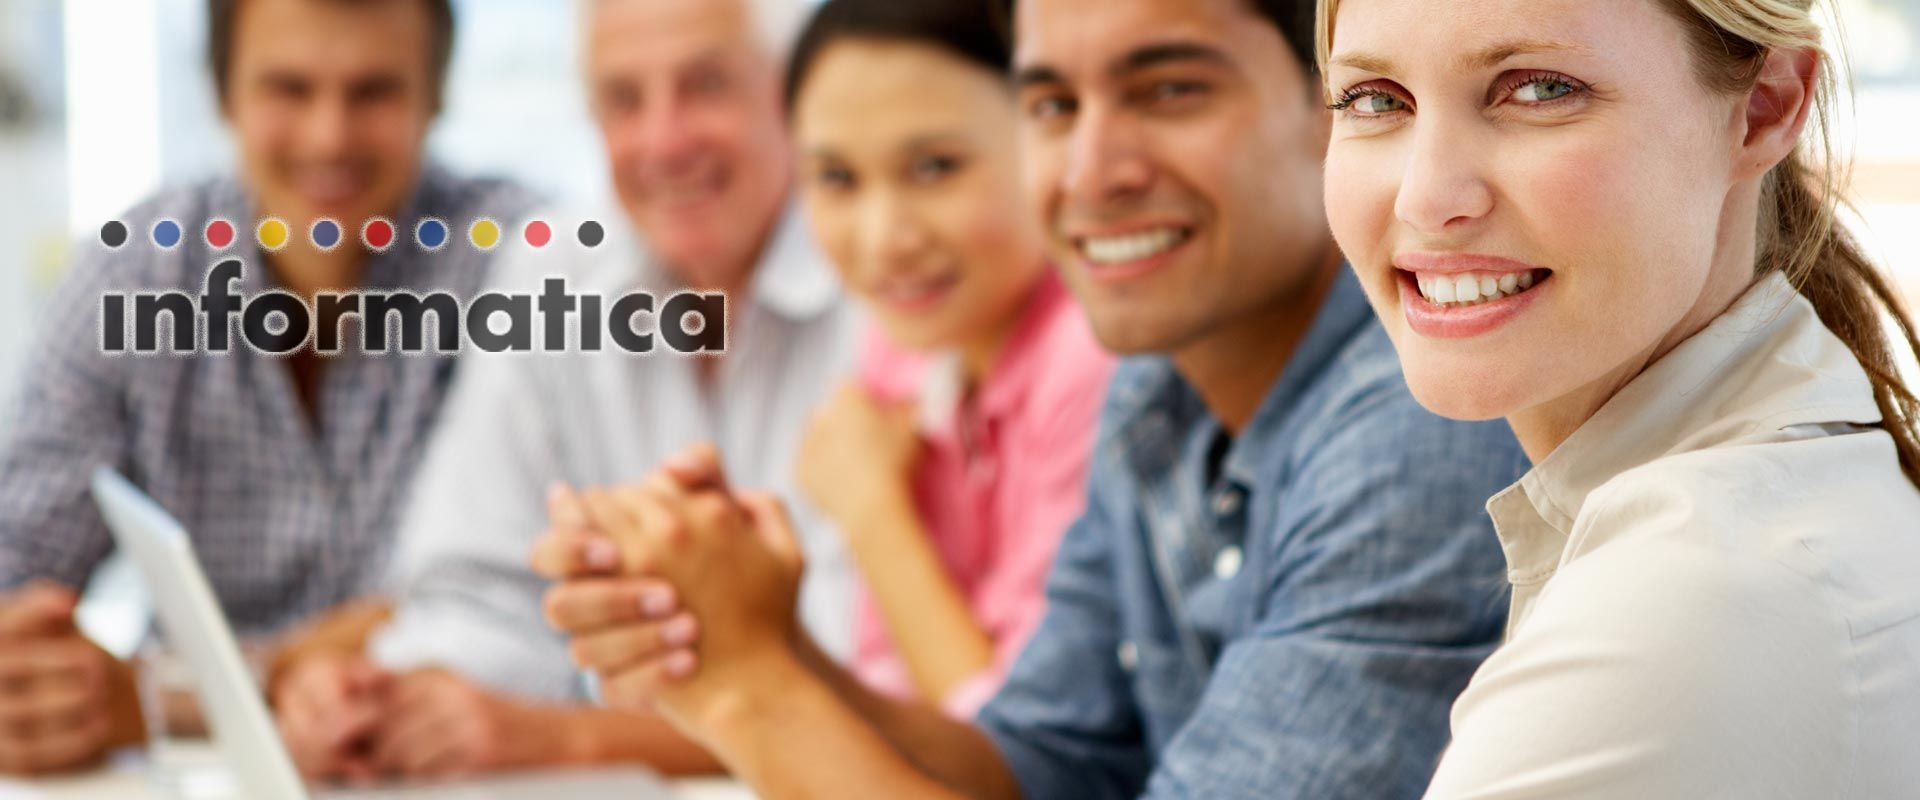 Informatica Consulting Company in Houston | Austin | Dallas | San Antonio | Atlanta